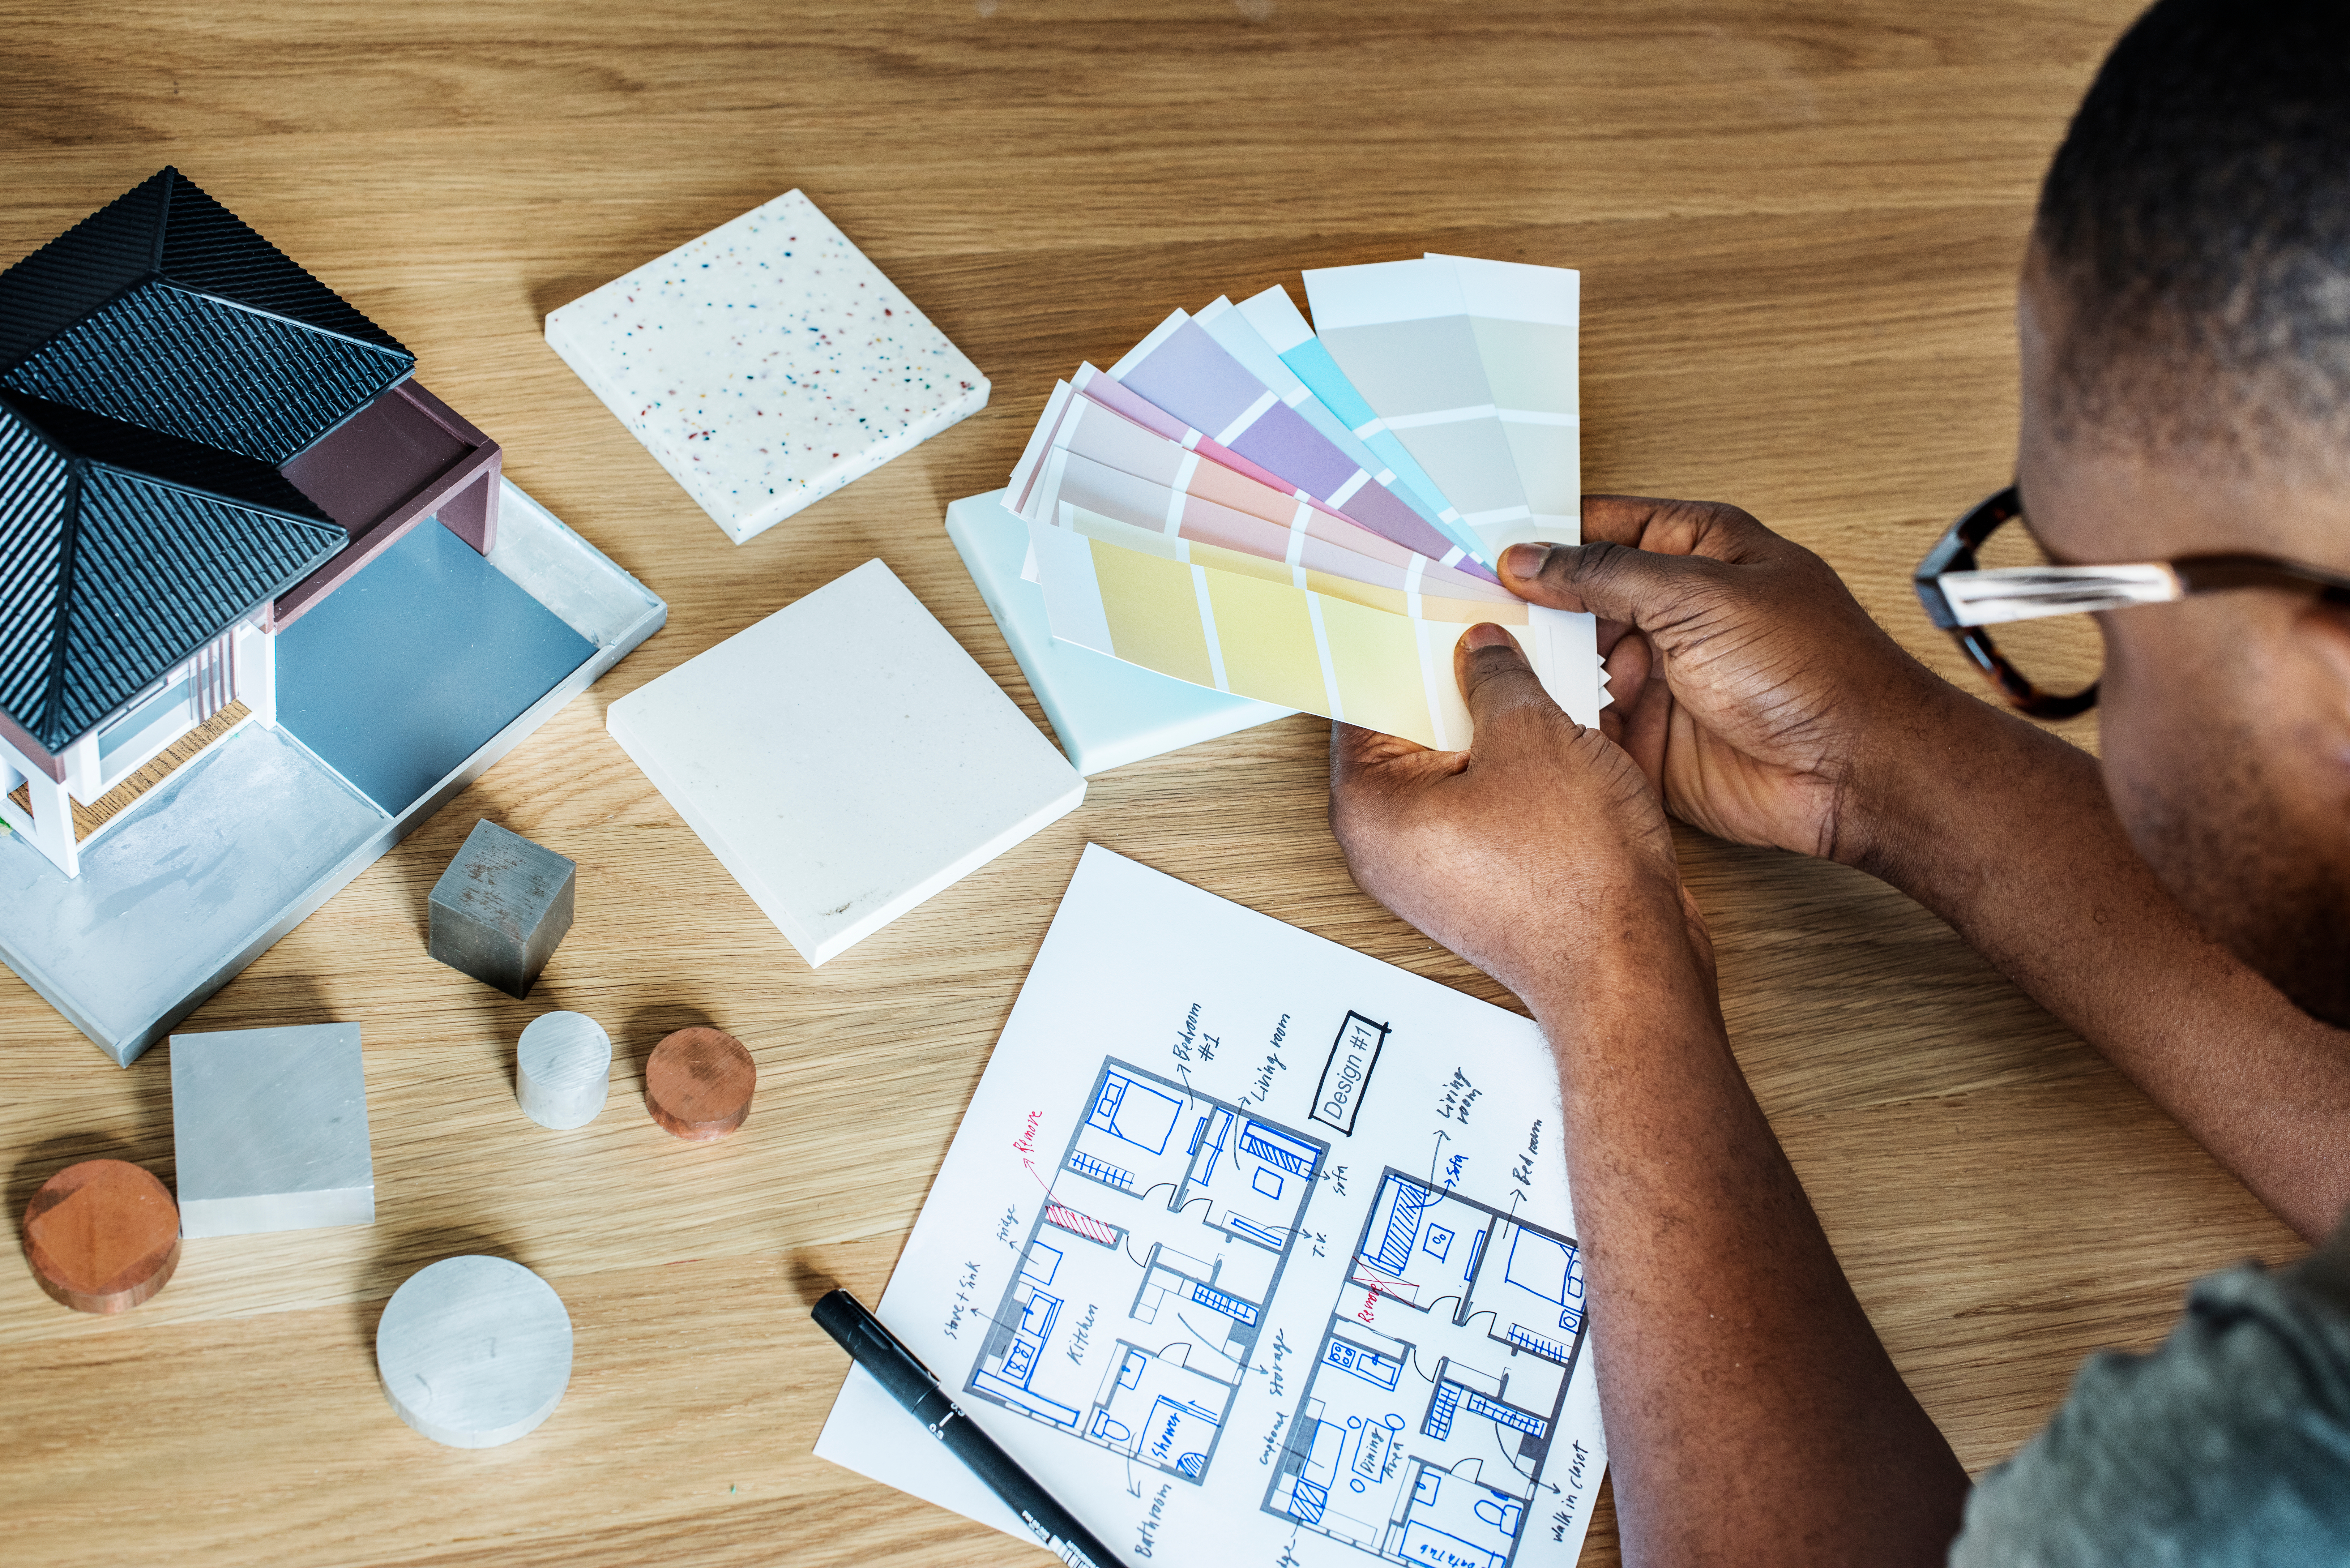 Man looking at paint color swatches